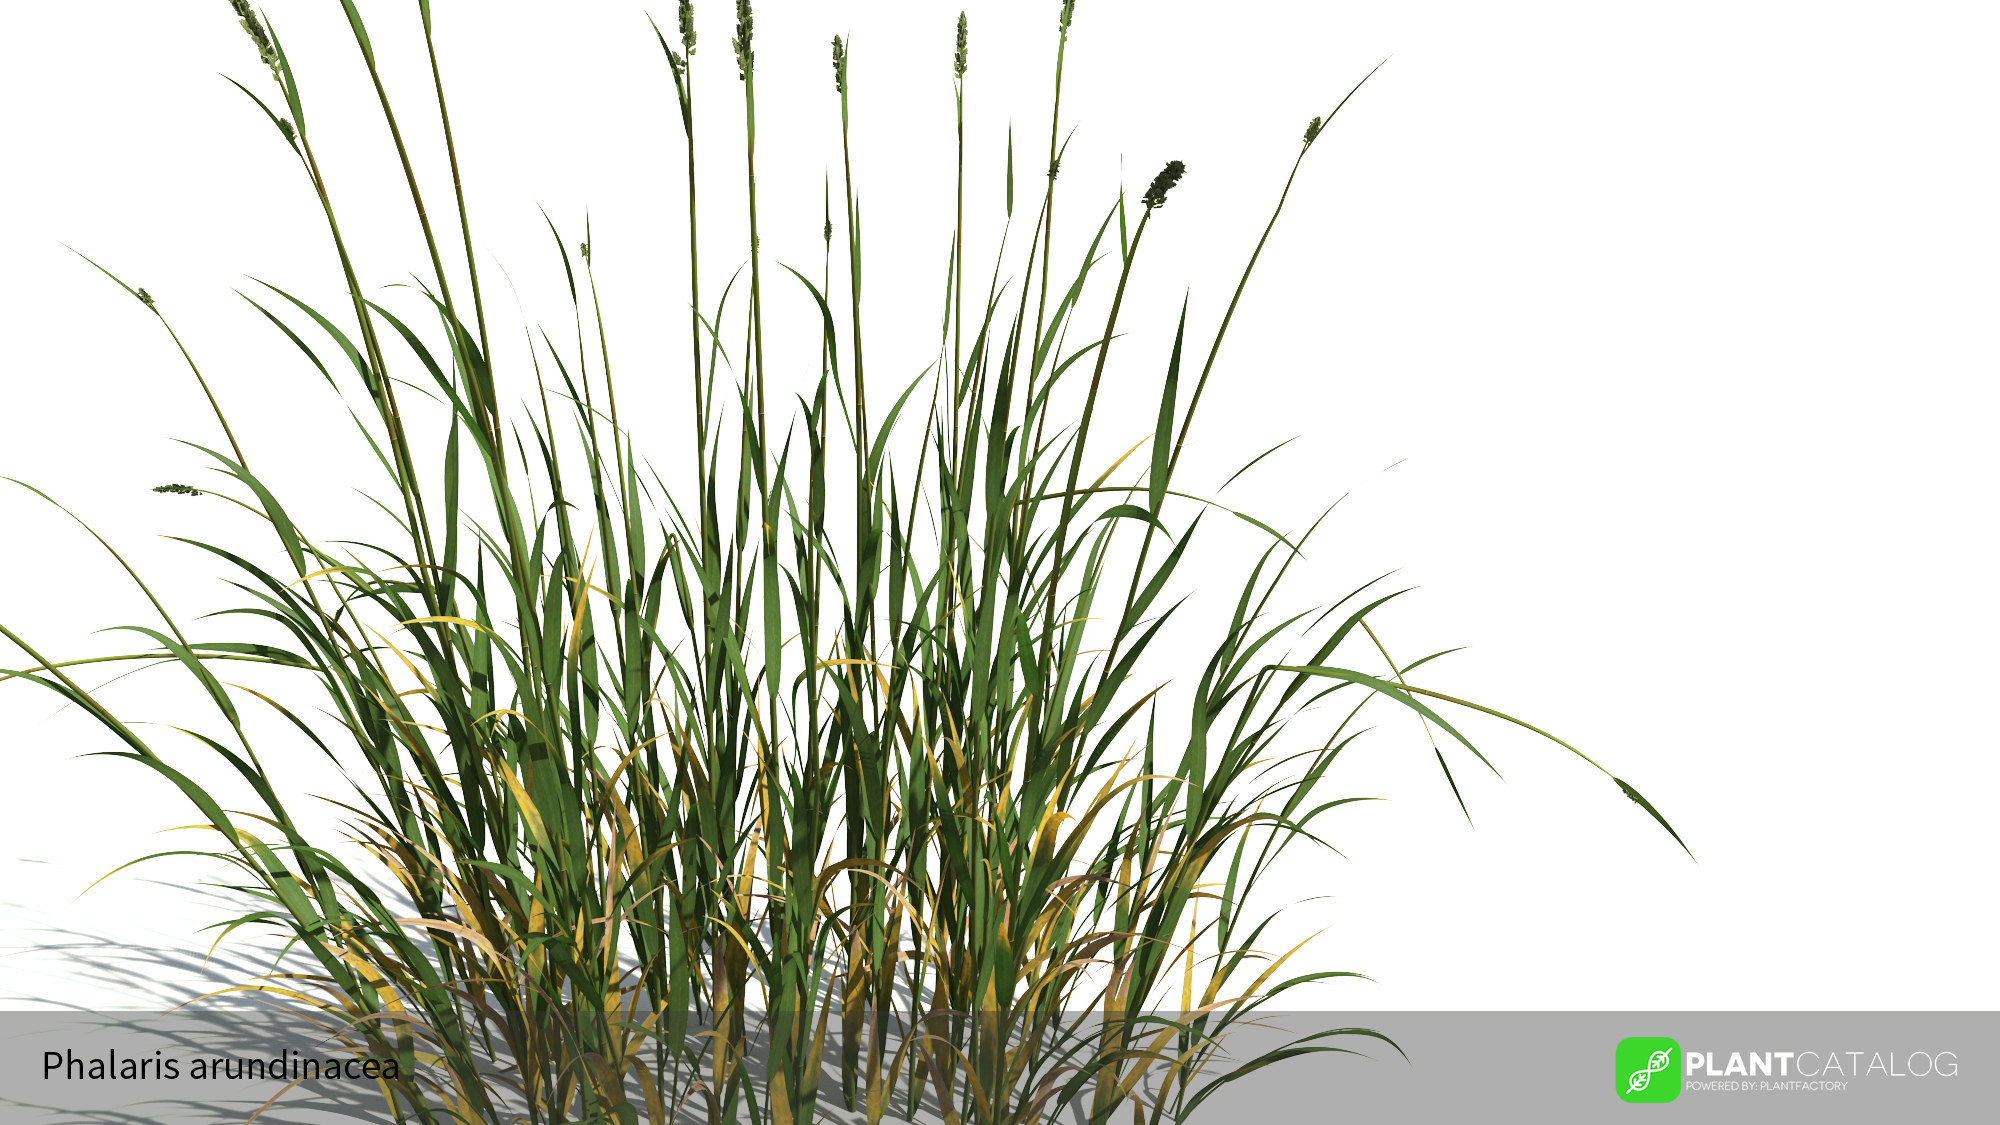 3D model of the Reed canary grass - Phalaris arundinacea - from the PlantCatalog, rendered in VUE